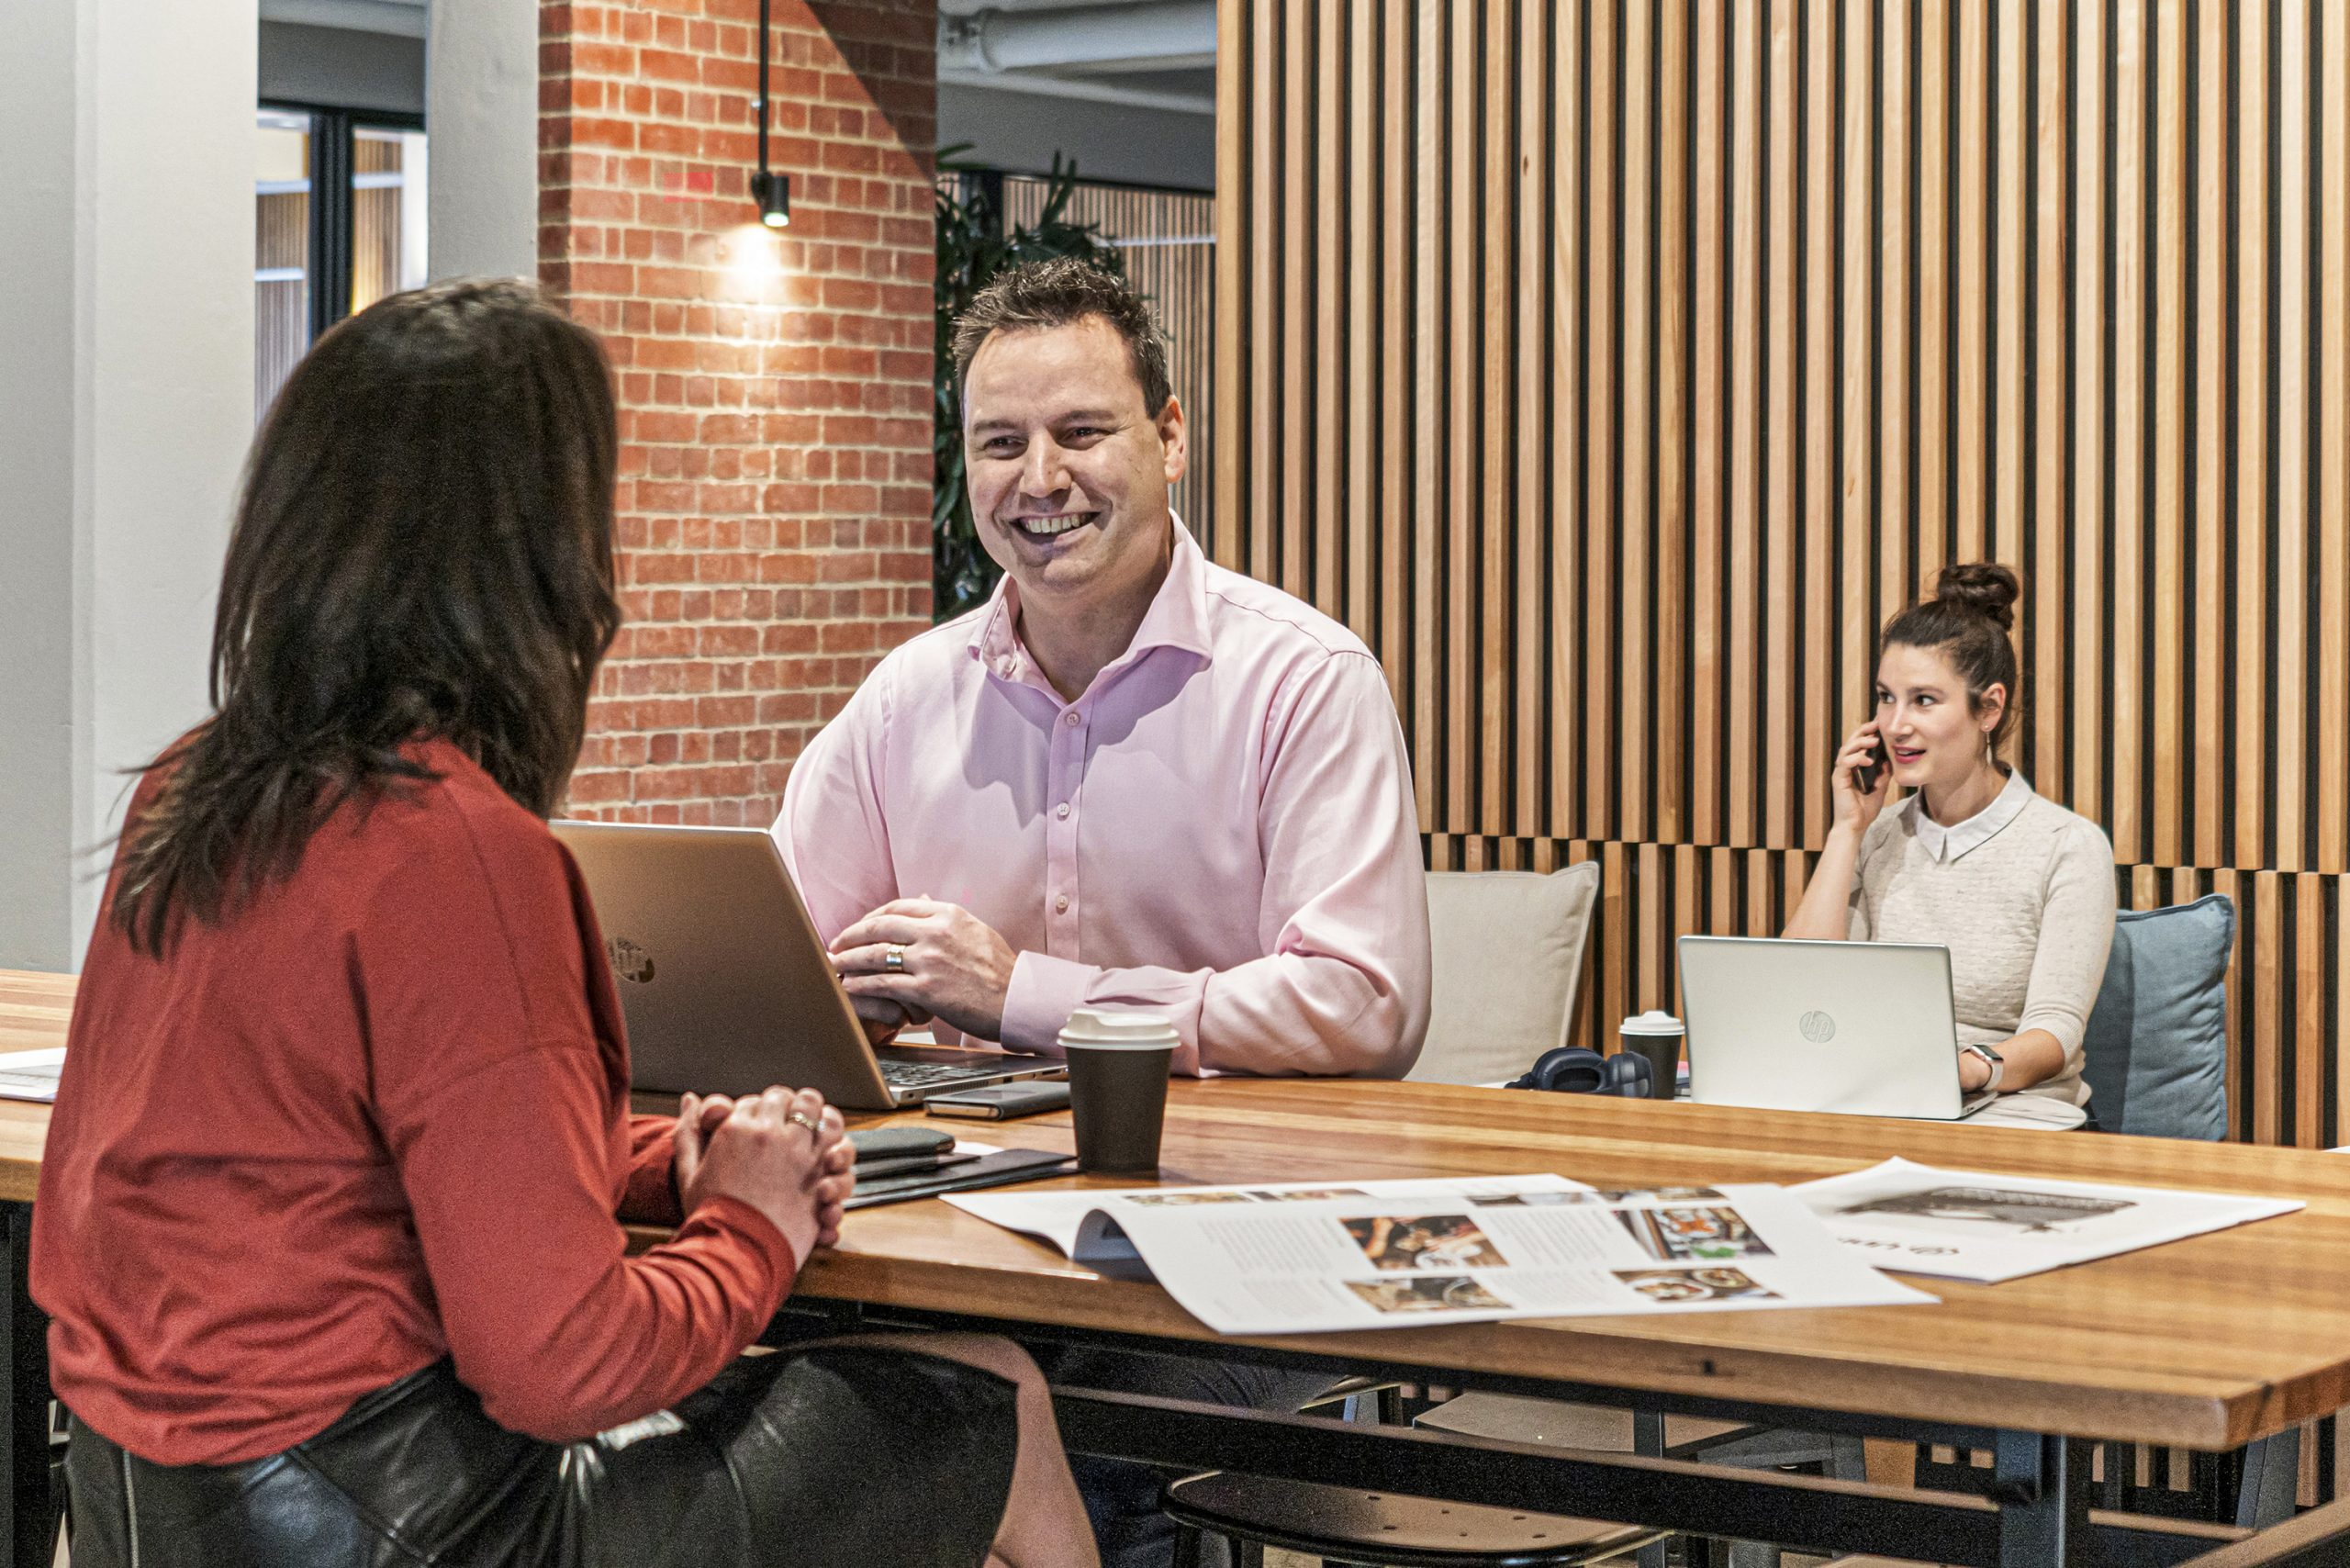 3 people working in a coworking space